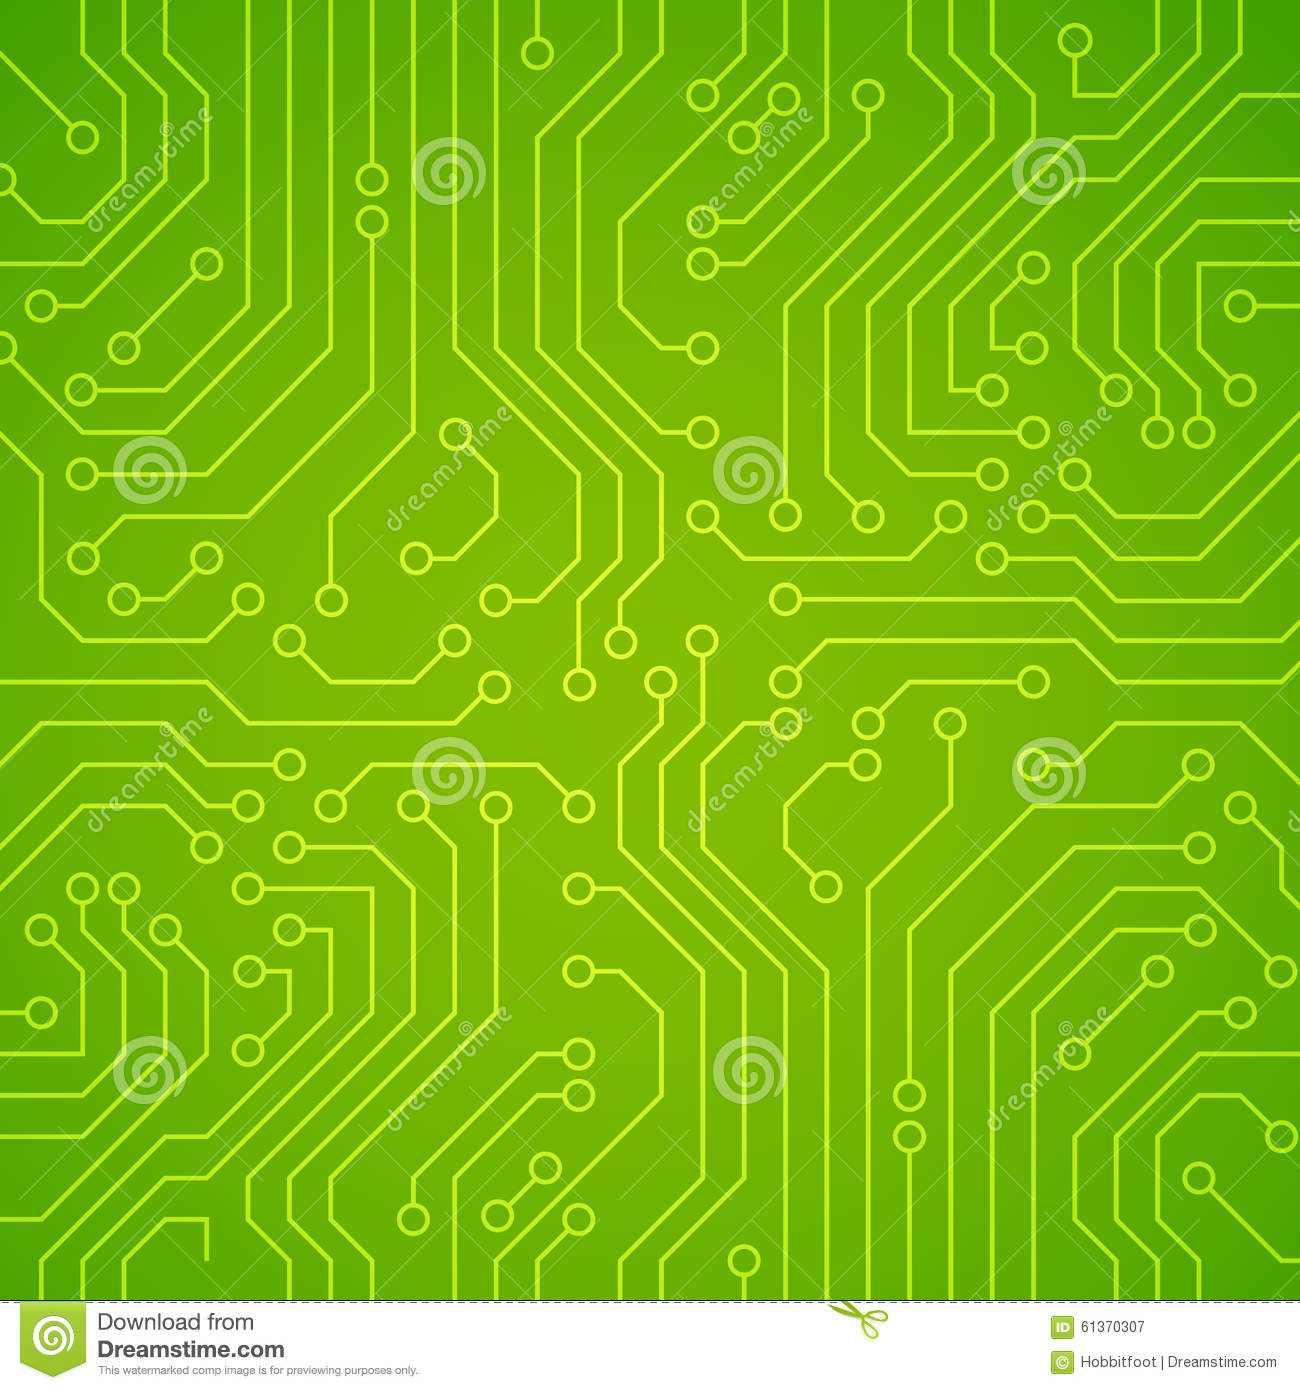 Vector Circuit Board Or Microchip. Stock Vector - Image ...